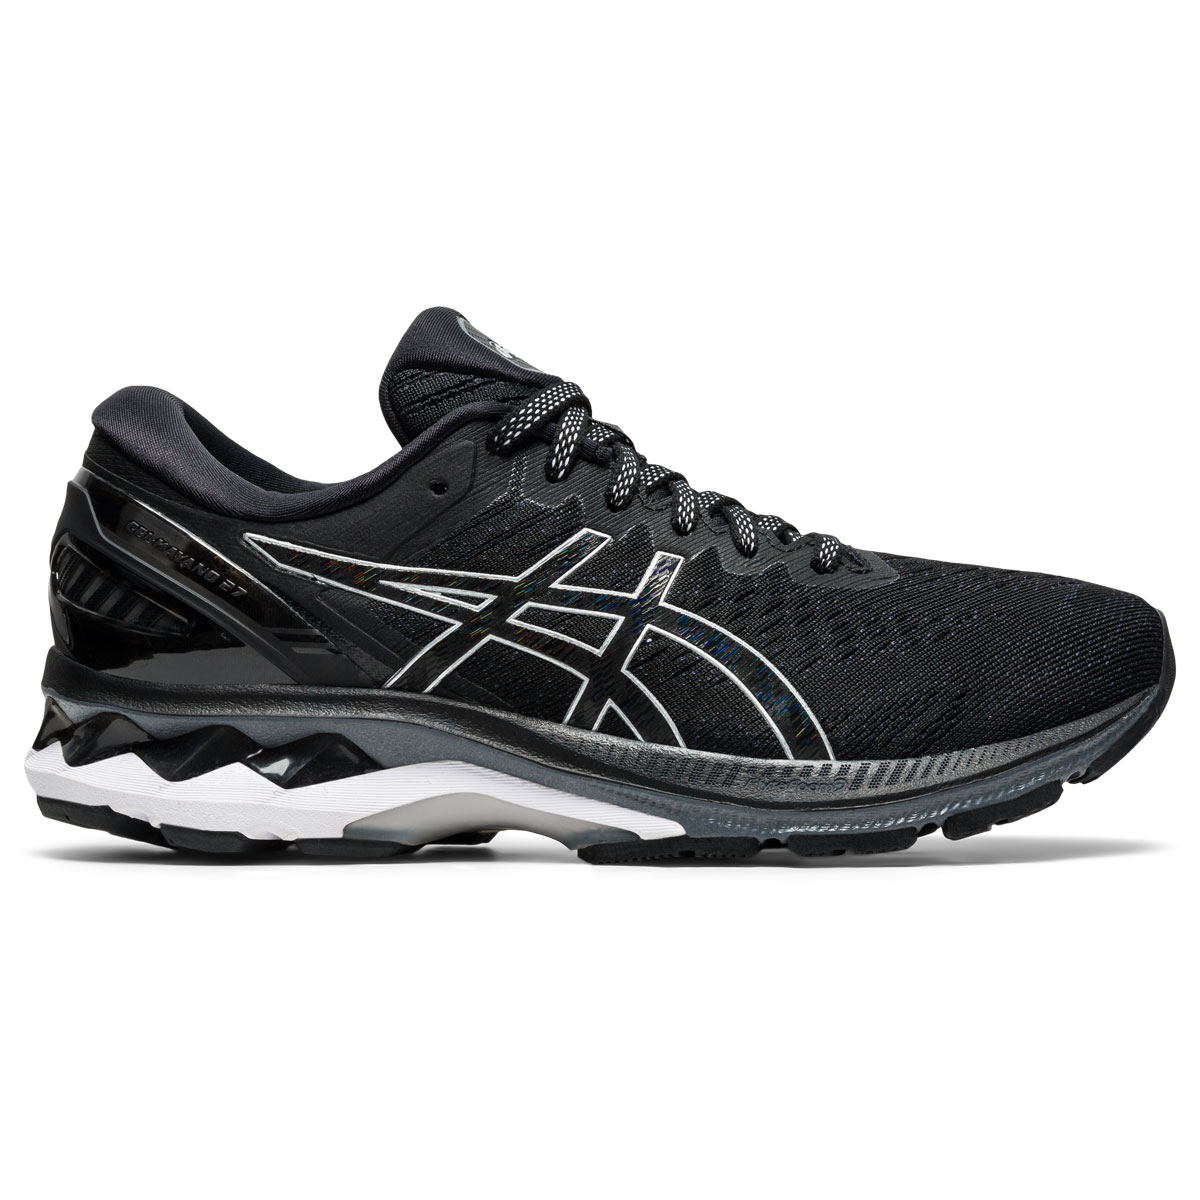 Women's Asics GEL-Kayano 27 Running Shoe - Color: Black/Pure Silv (Regular Width) - Size: 5, Black/Pure Silv, large, image 1